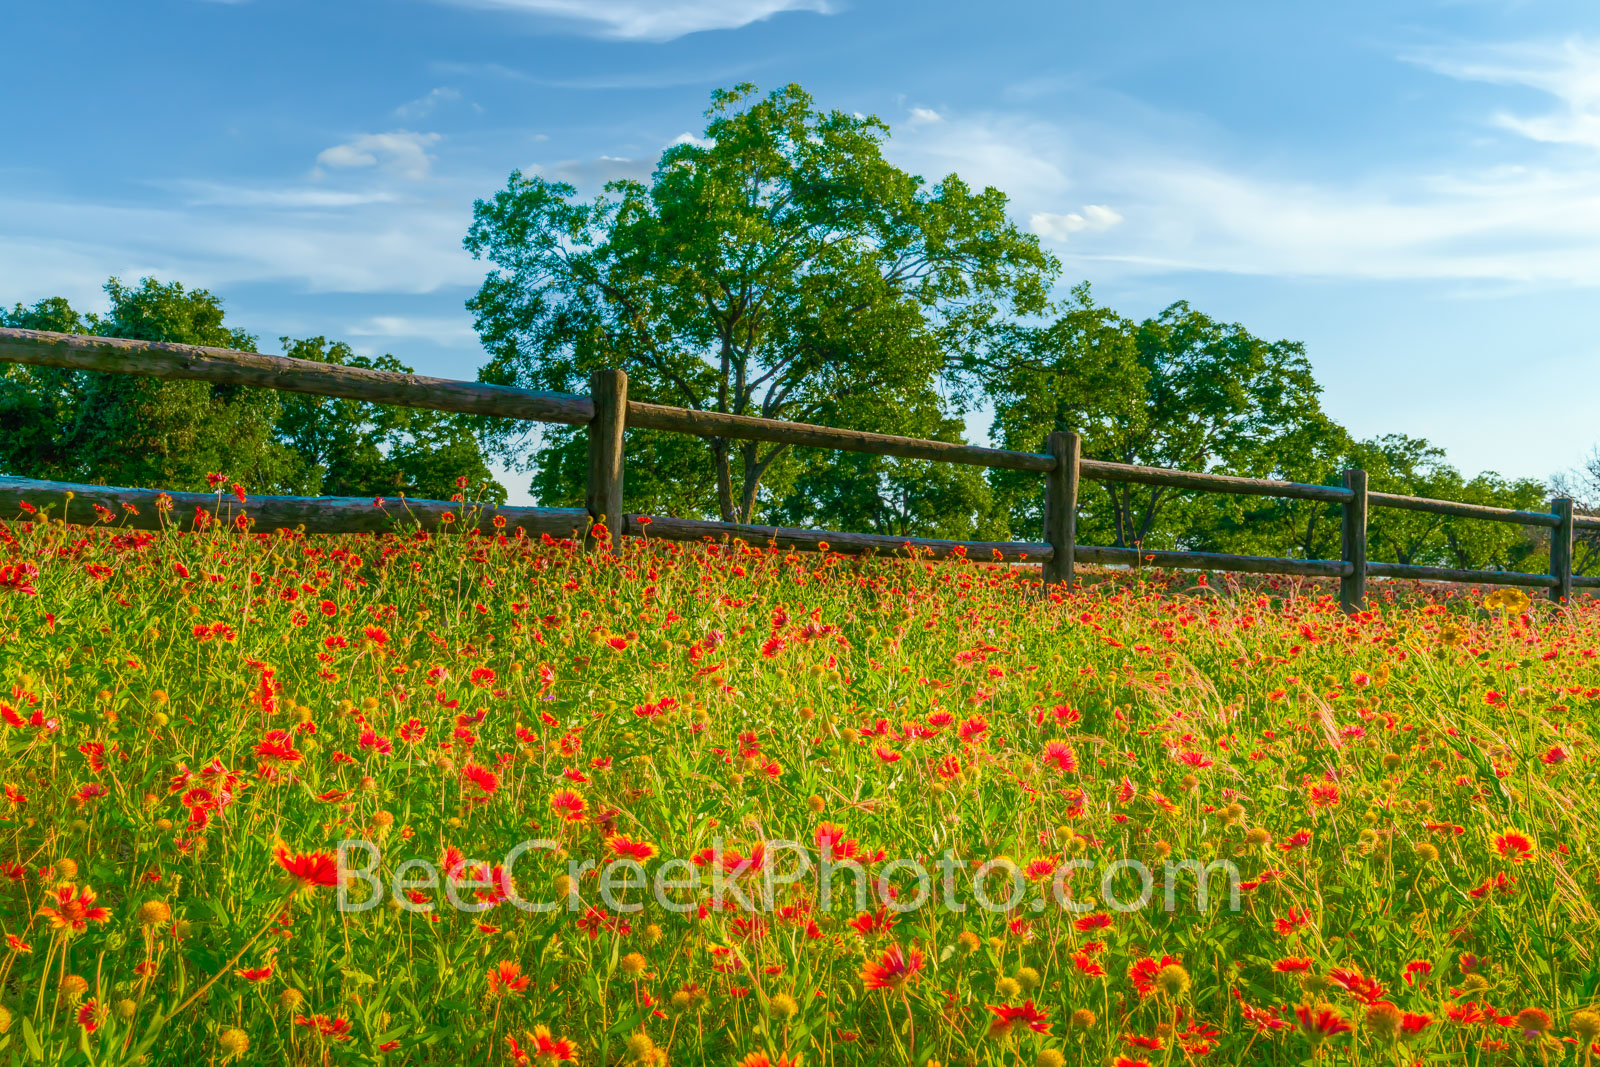 wildflowers, fence, texas hill country, field of texas wildflowers, hill country, indian blanket,fire wheel , red, spring, blue sky,, photo